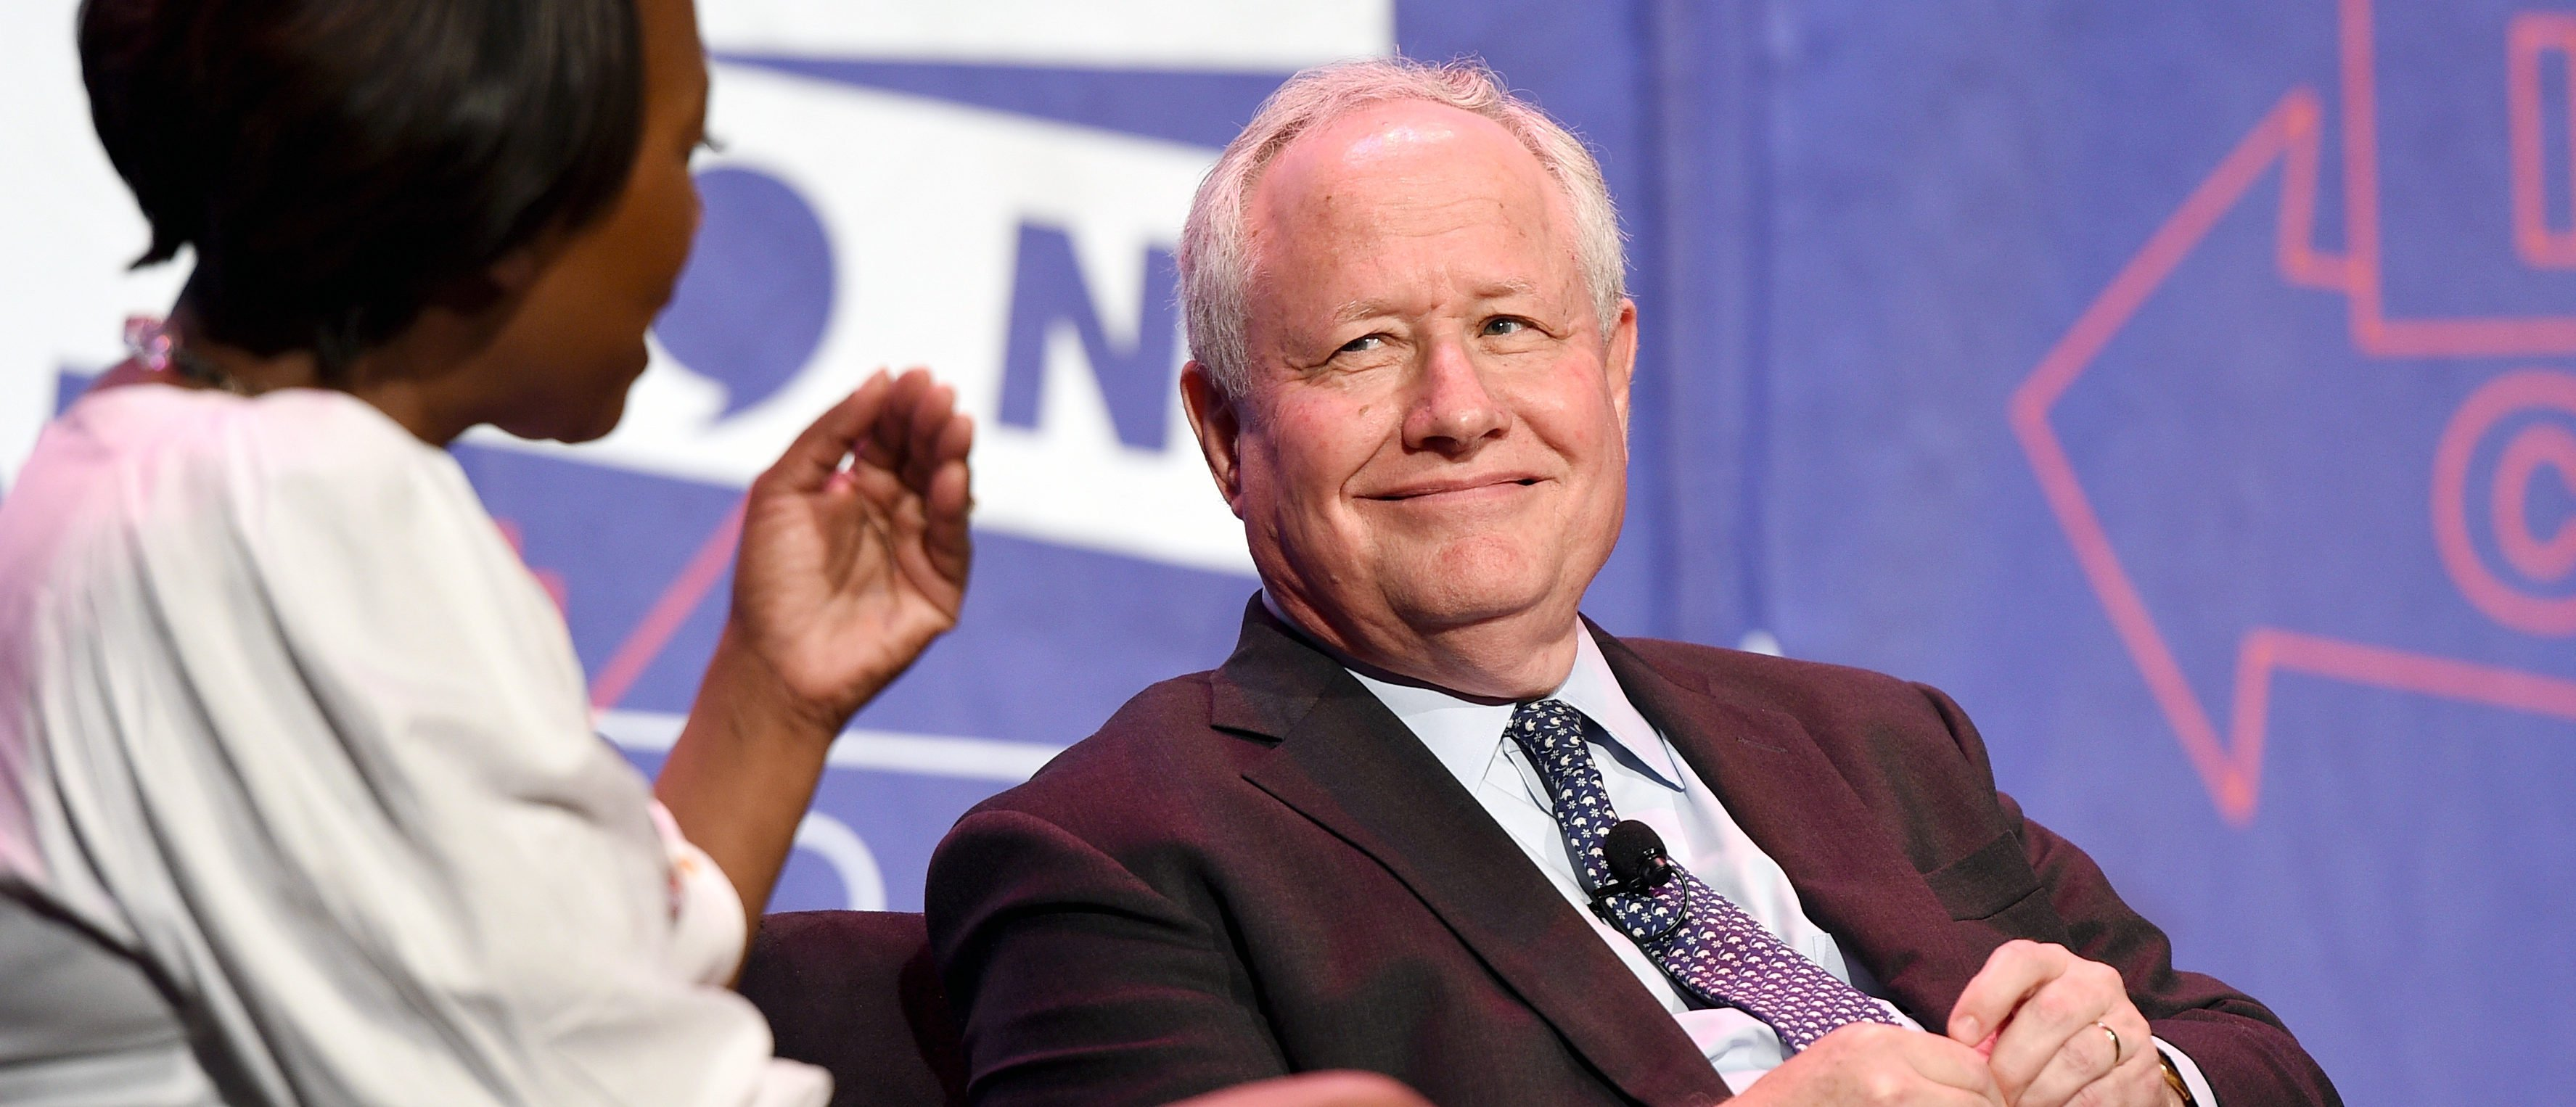 PASADENA, CA - JULY 29: Moderator Joy-Ann Reid (L) and William Kristol at 'LBJ' panel during Politicon at Pasadena Convention Center on July 29, 2017 in Pasadena, California. (Photo by Joshua Blanchard/Getty Images for Politicon)